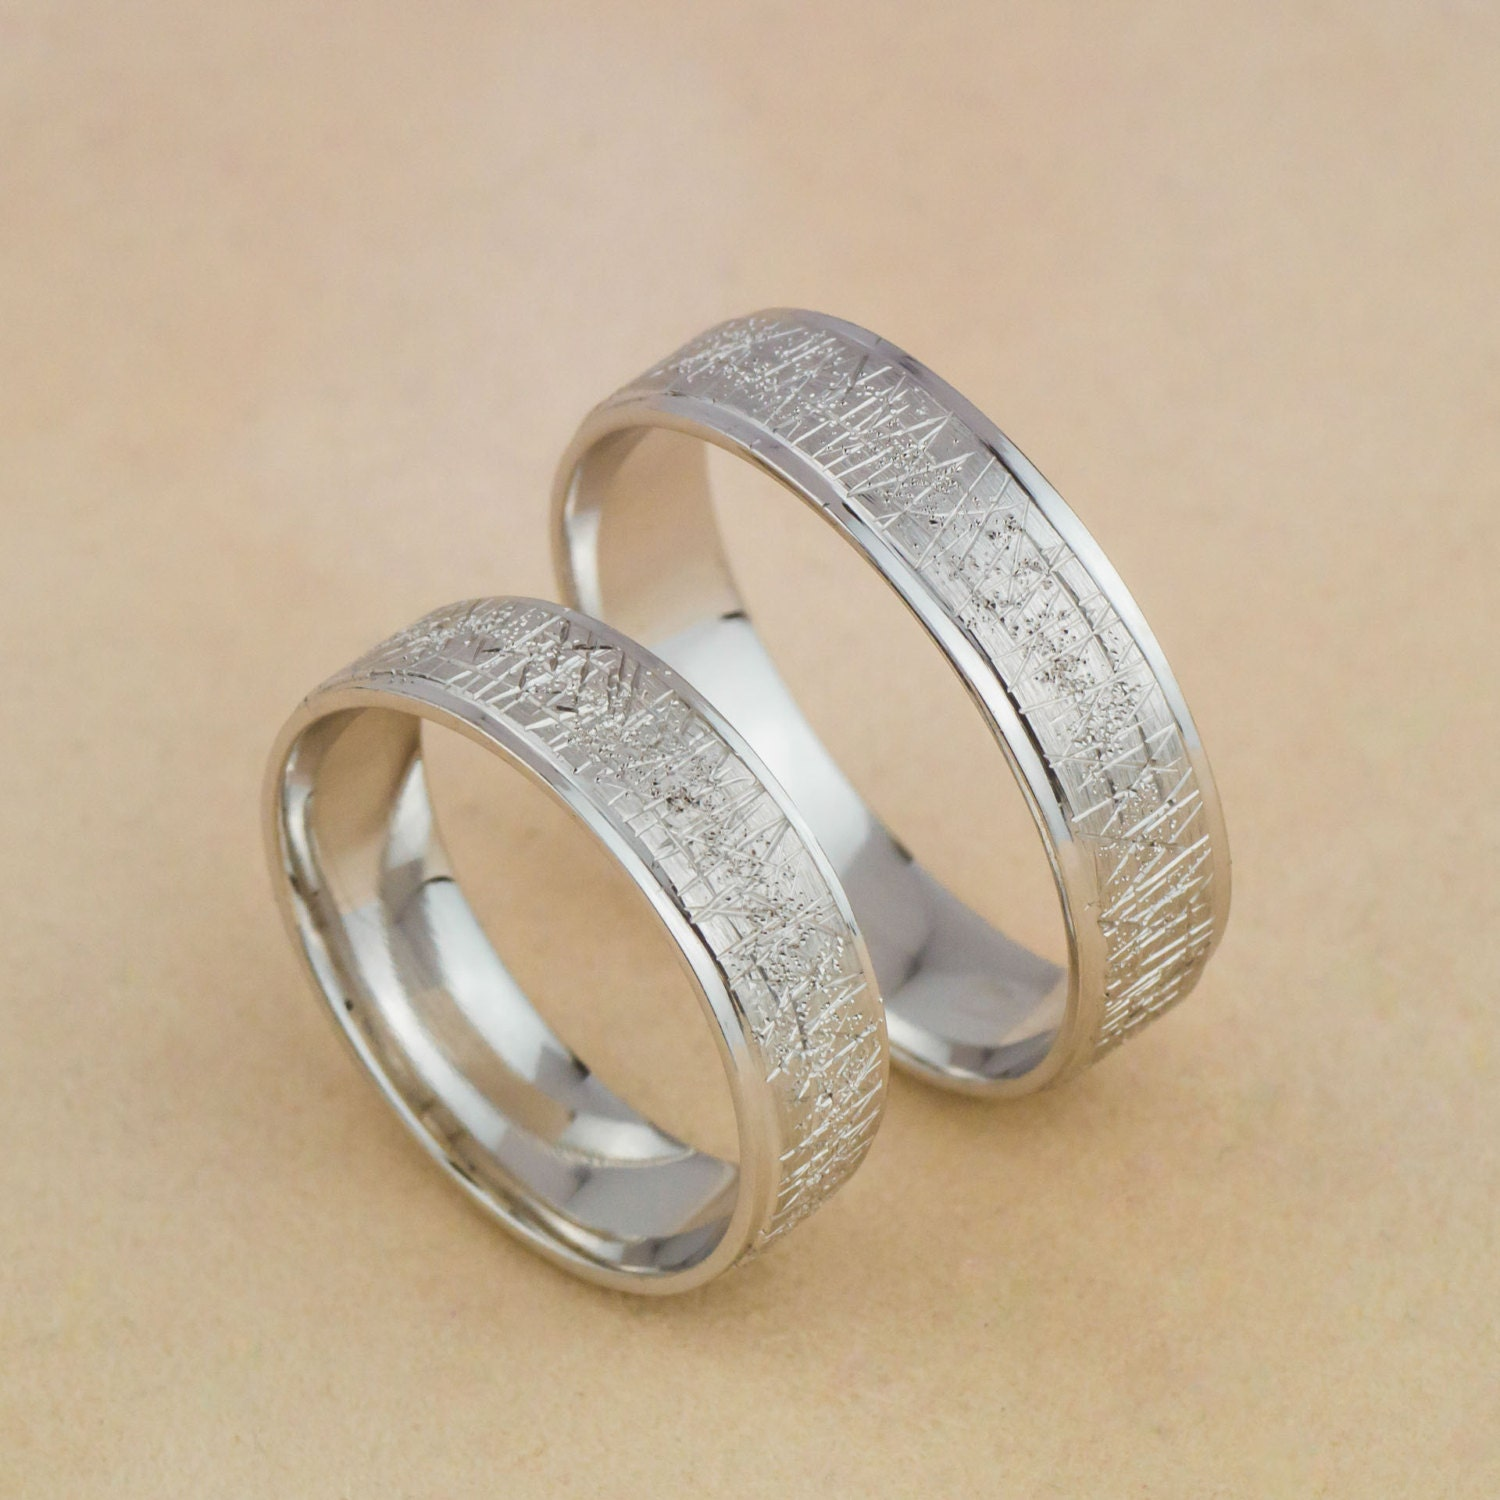 wedding bands in 14k white gold with unique scratches and